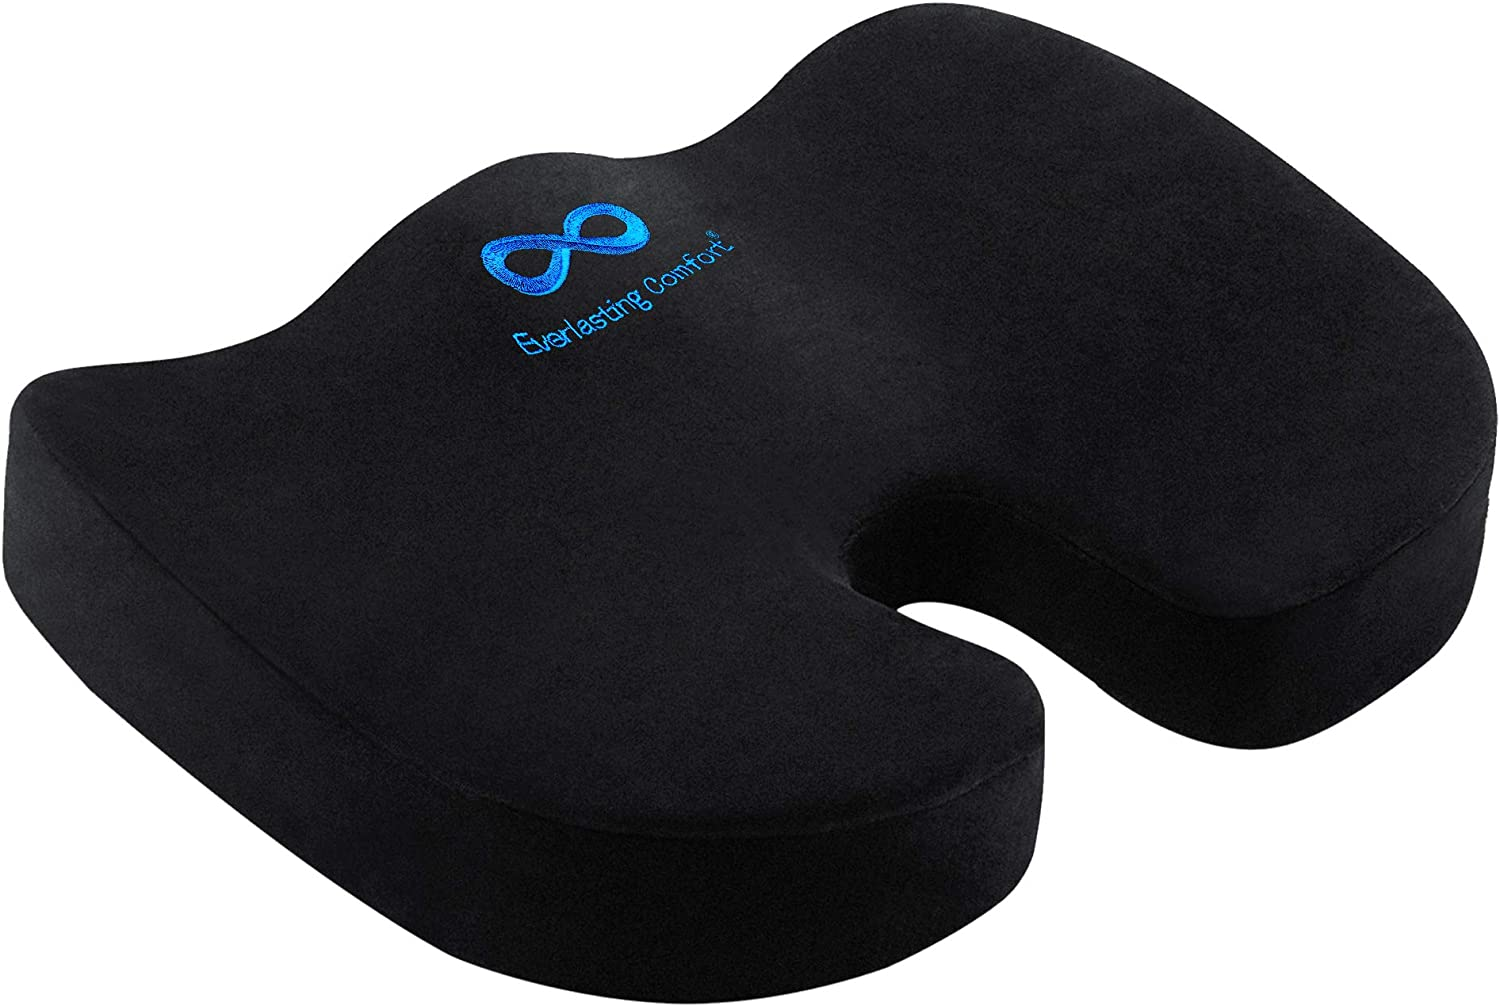 Amazon.com : Everlasting Comfort Seat Cushion for Office Chair - Tailbone Cushion - Coccyx Cushion - Sciatica Pillow for Sitting (Black) : Office Products